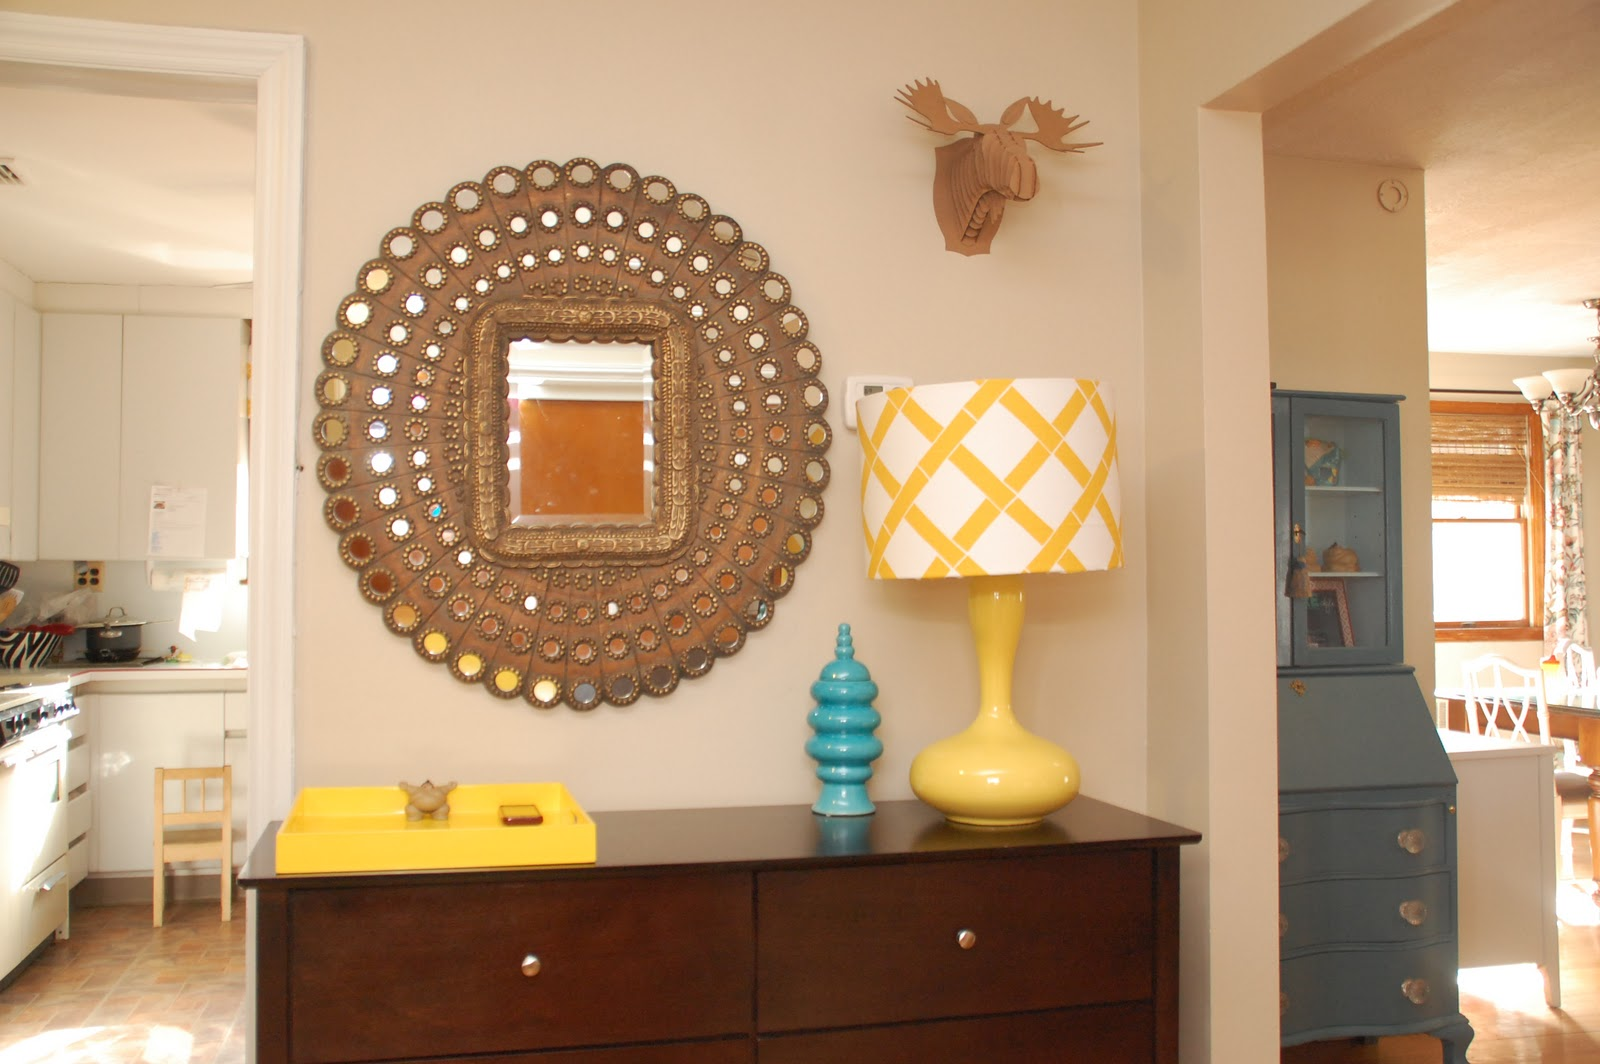 Lisa Moves Honeycomb Pea Mirror Or My Foyer